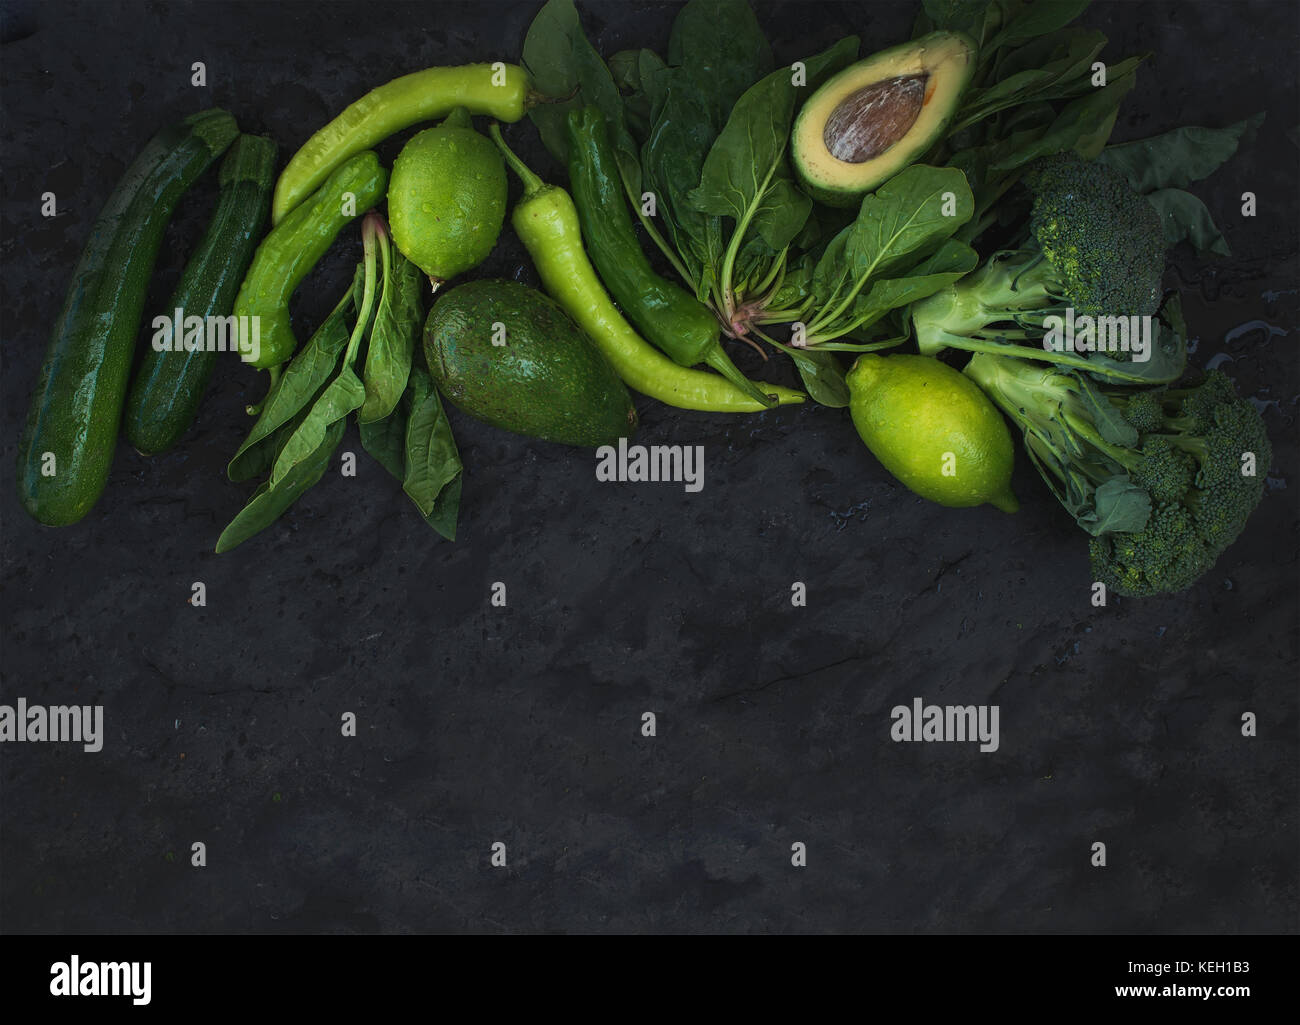 Raw green vegetables set. Broccoli, avocado, pepper, lime on dark stone background, top view, copy space - Stock Image